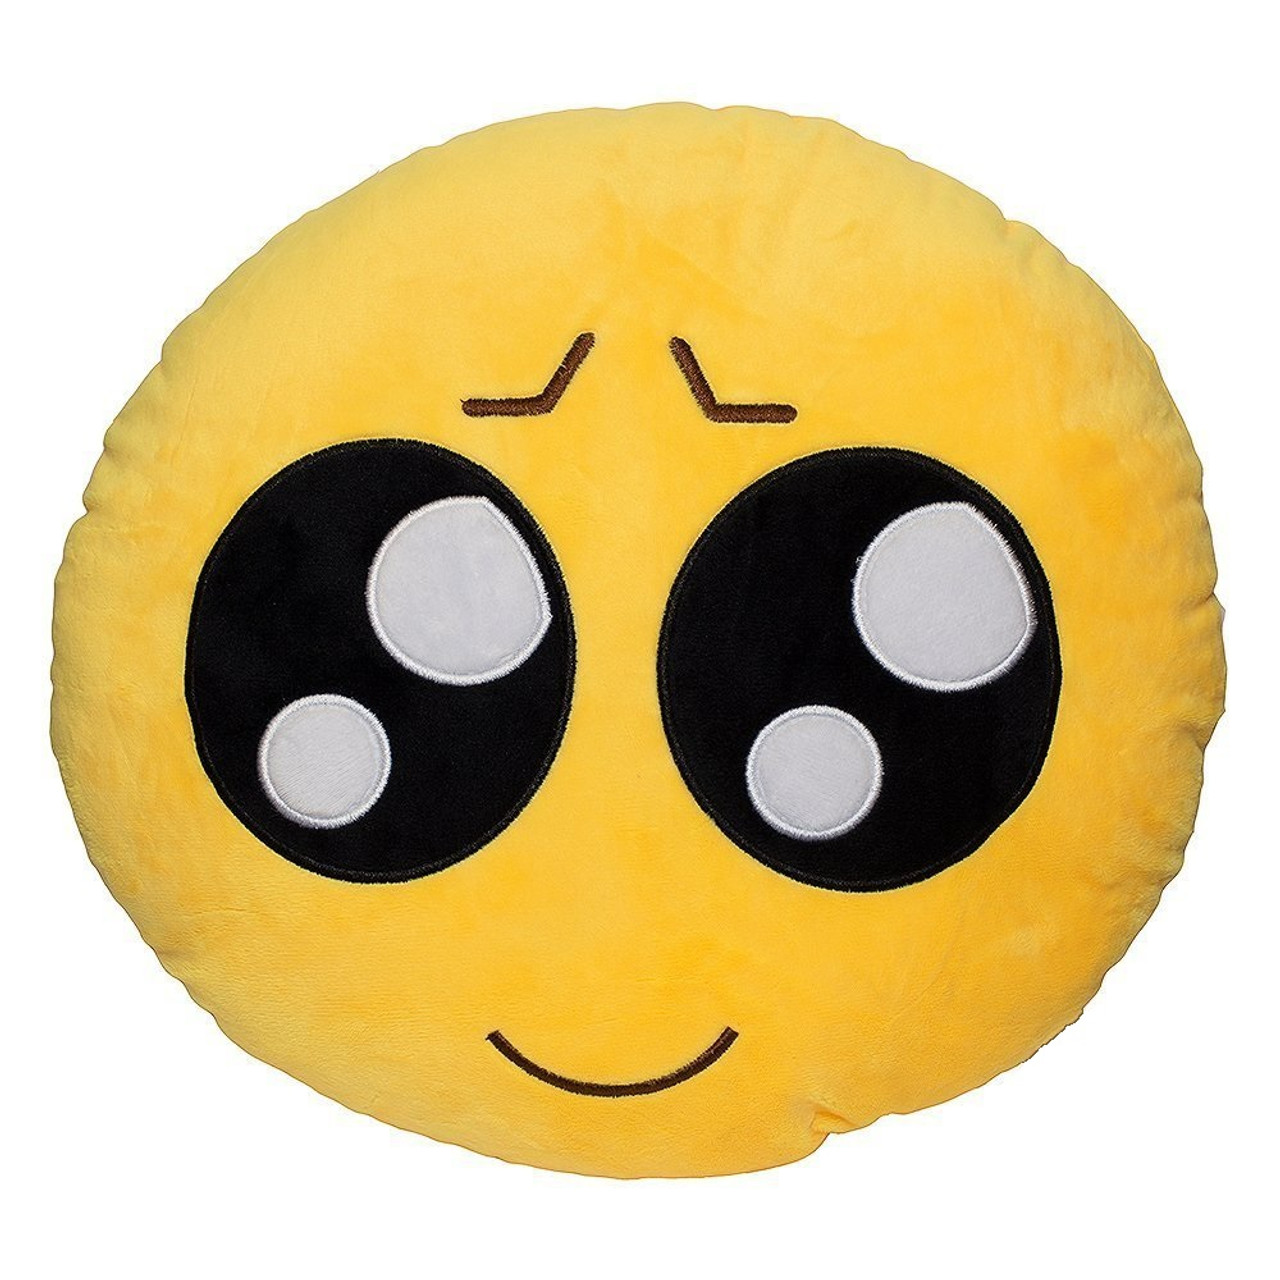 Please Emoji Pillow 12 5 Inch Large Yellow Smiley Emoticon